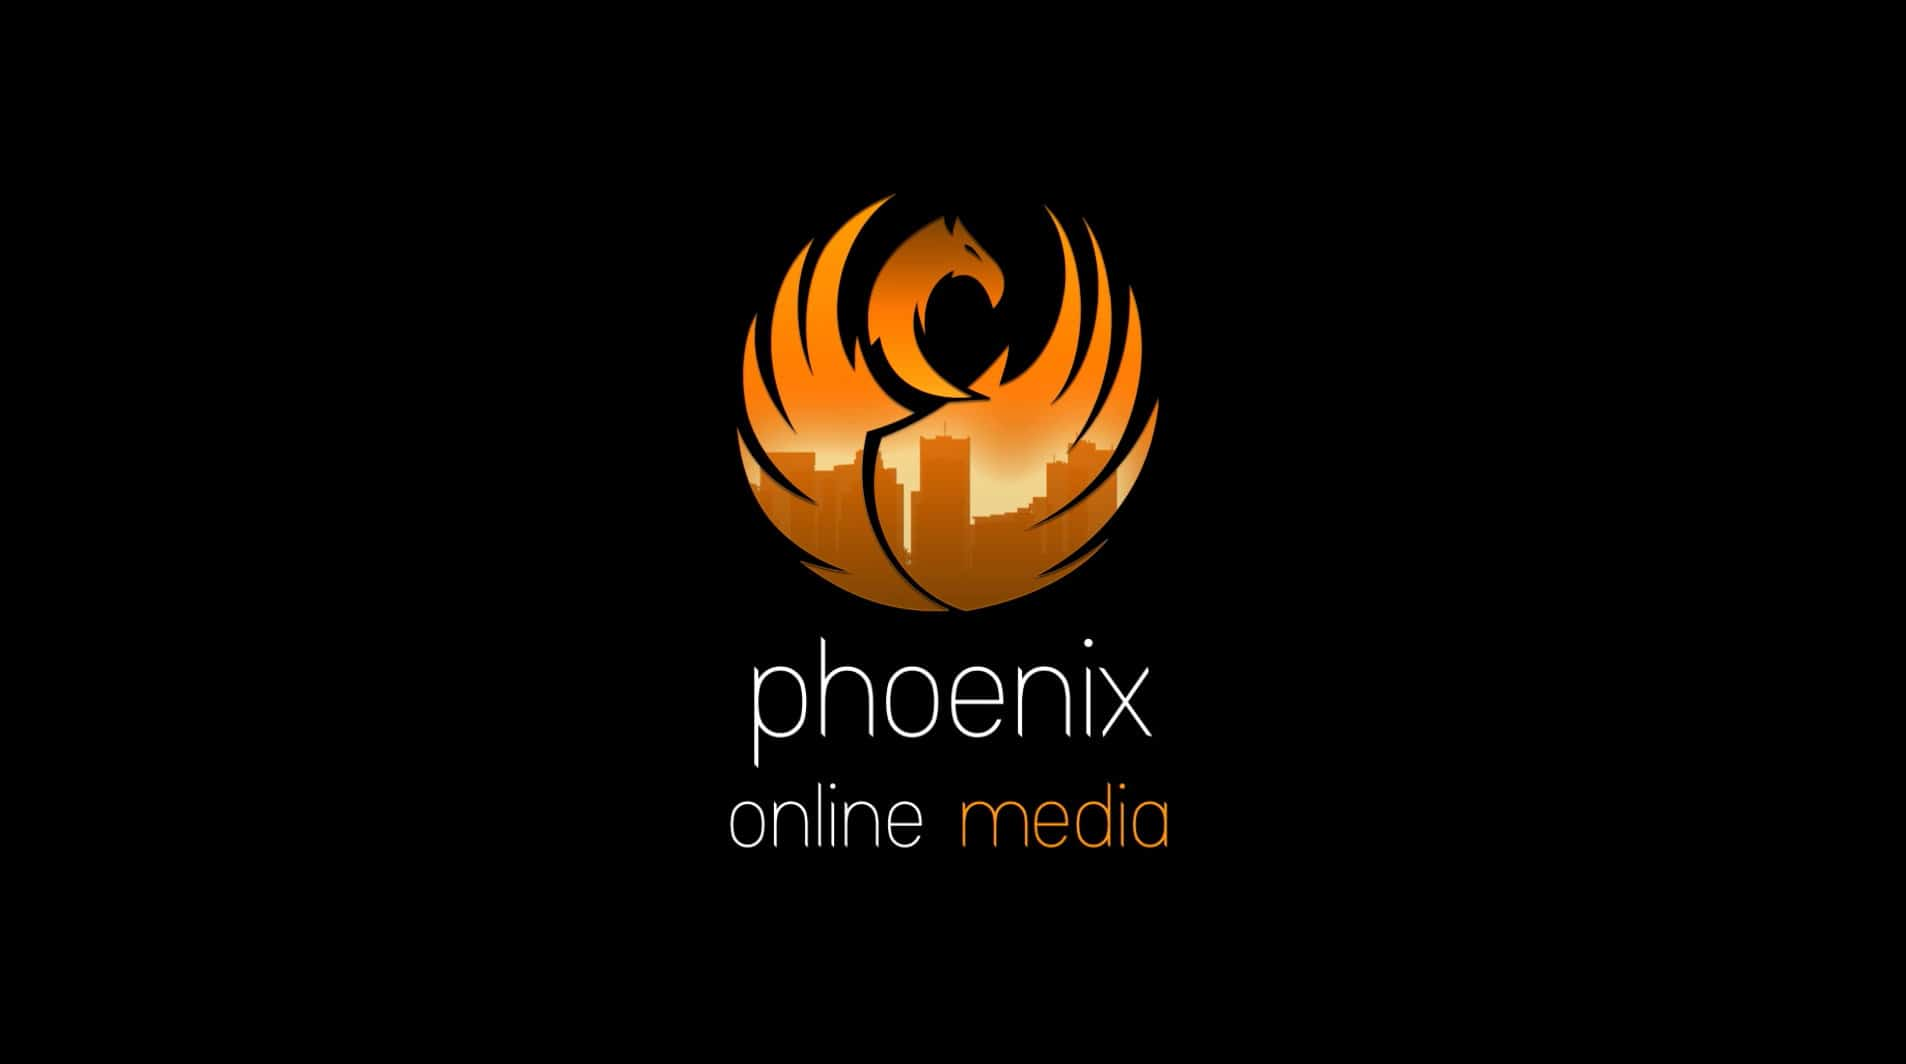 Phoenix Online Media Digital Marketing Agency